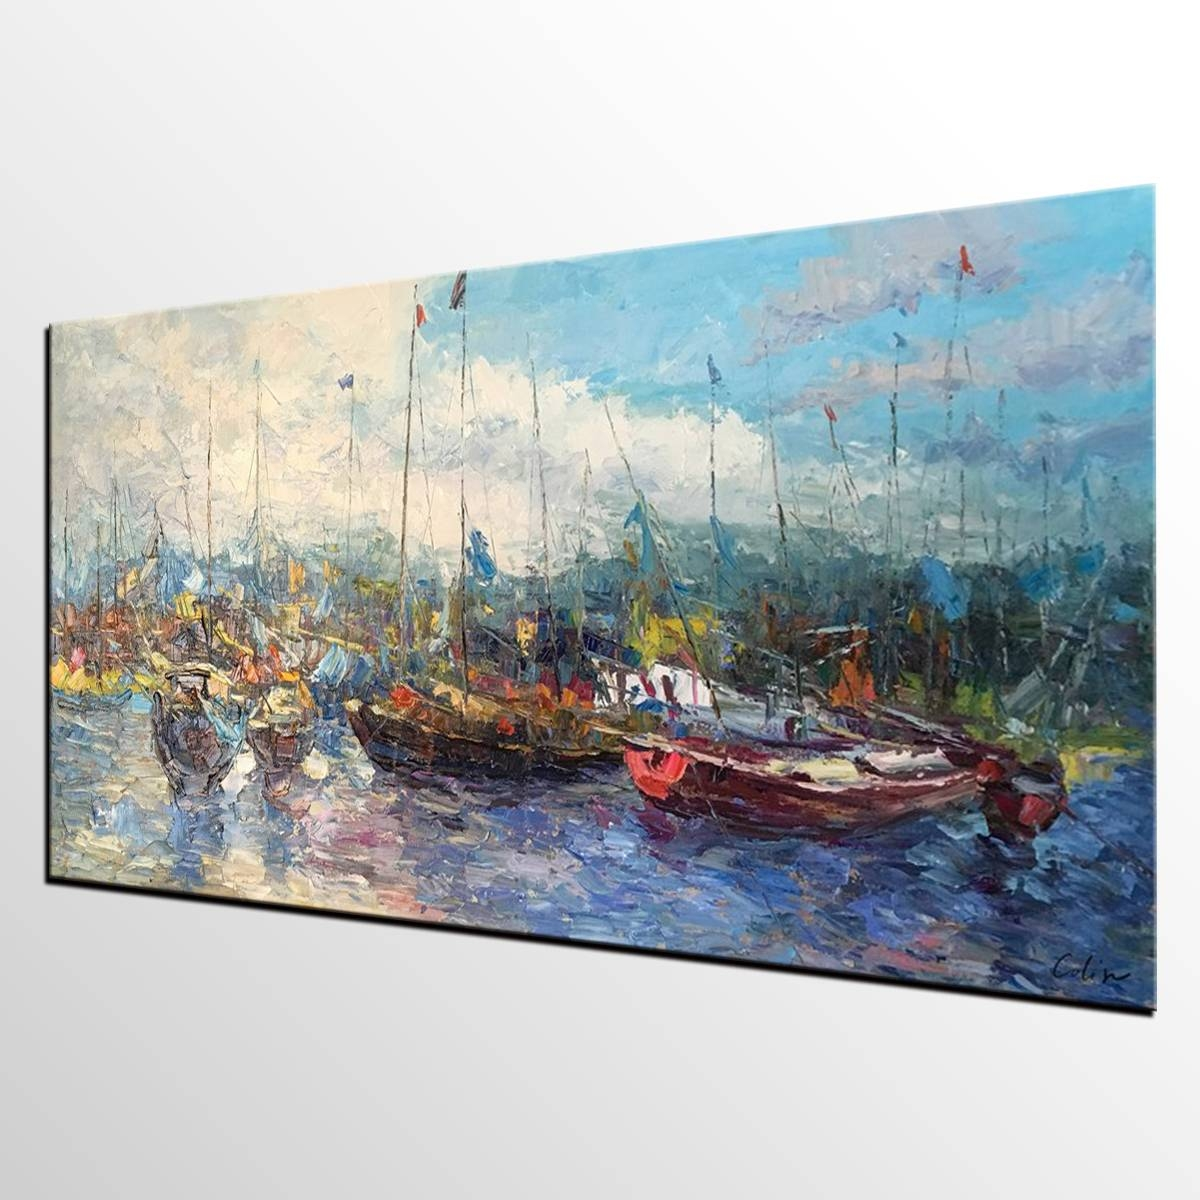 Boat Painting, Landscape Painting, Original Artwork, Canvas Intended For 2018 Boat Wall Art (View 6 of 20)